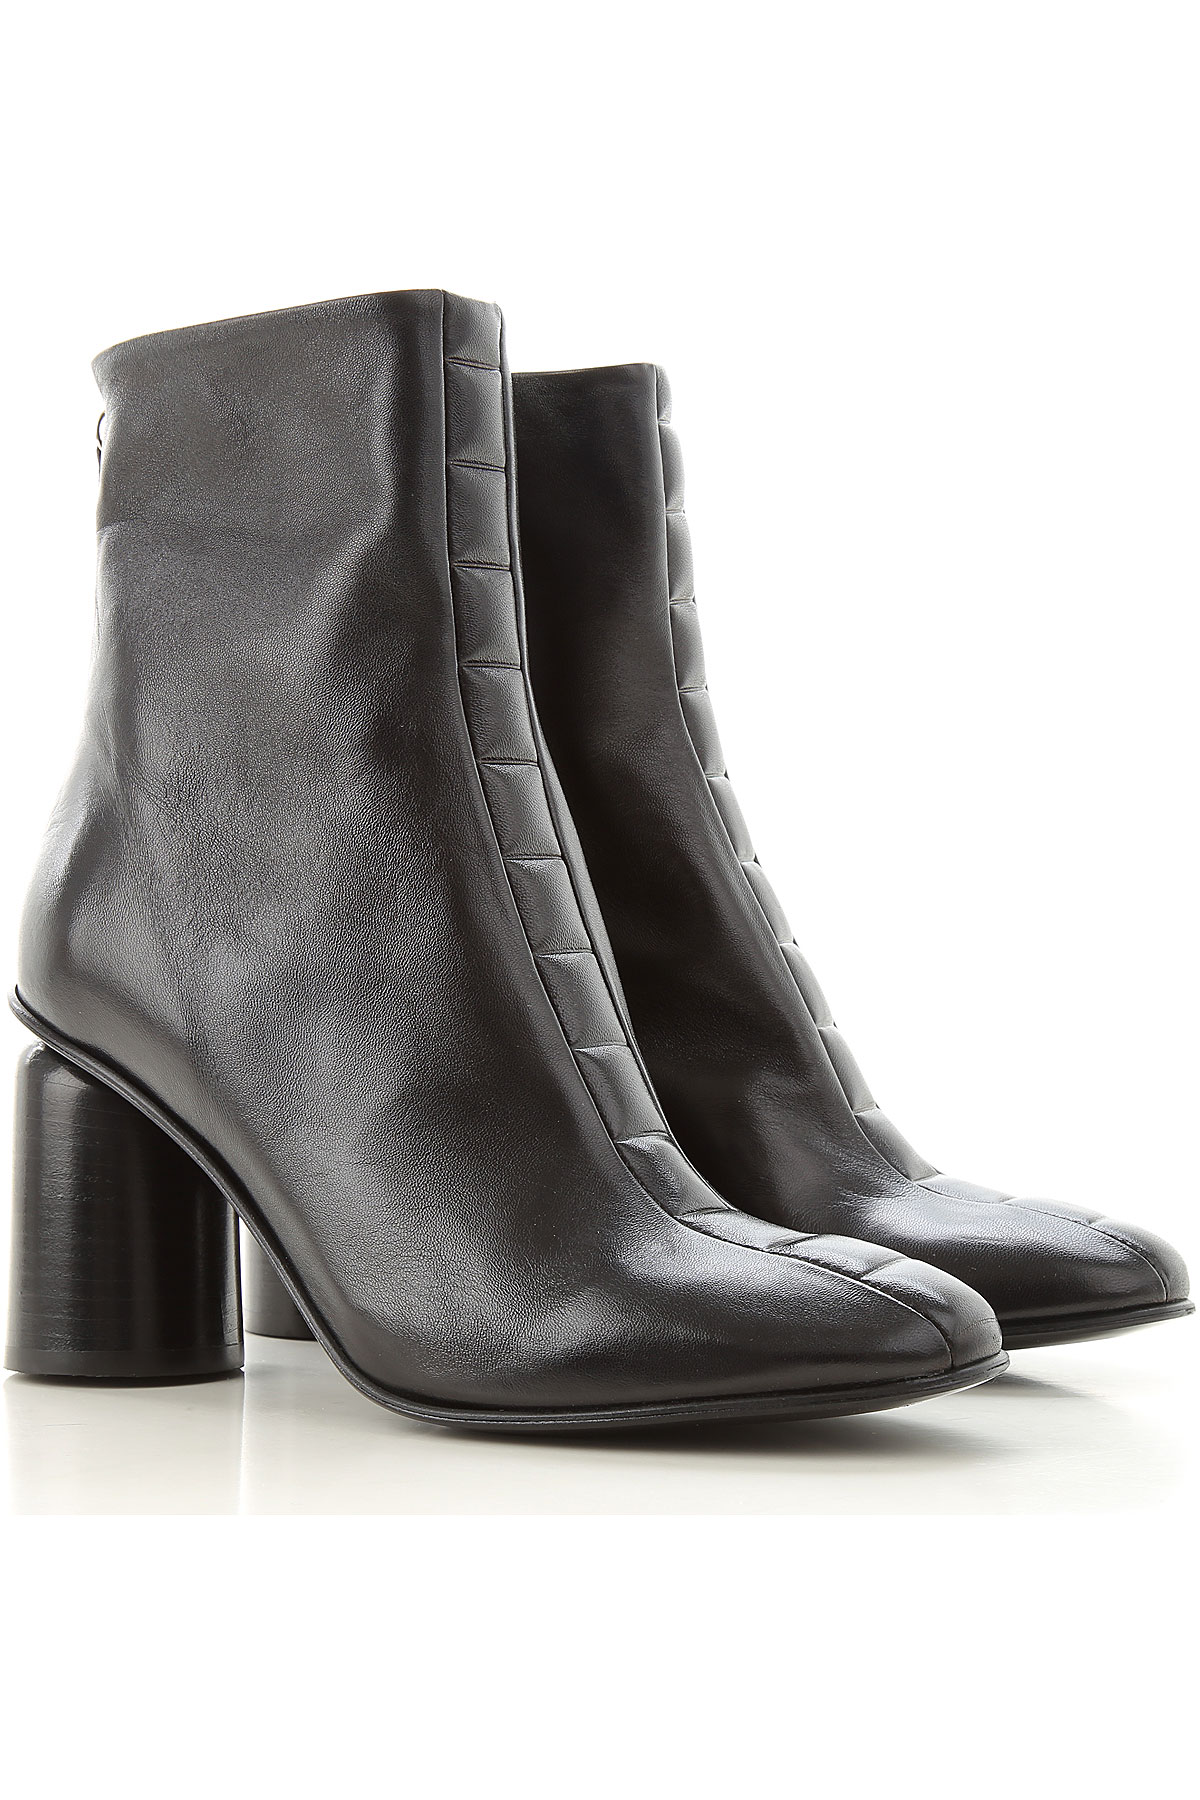 Halmanera Boots for Women, Booties On Sale, Black, Leather, 2019, 10 11 5 6 6.5 8 9 9.5